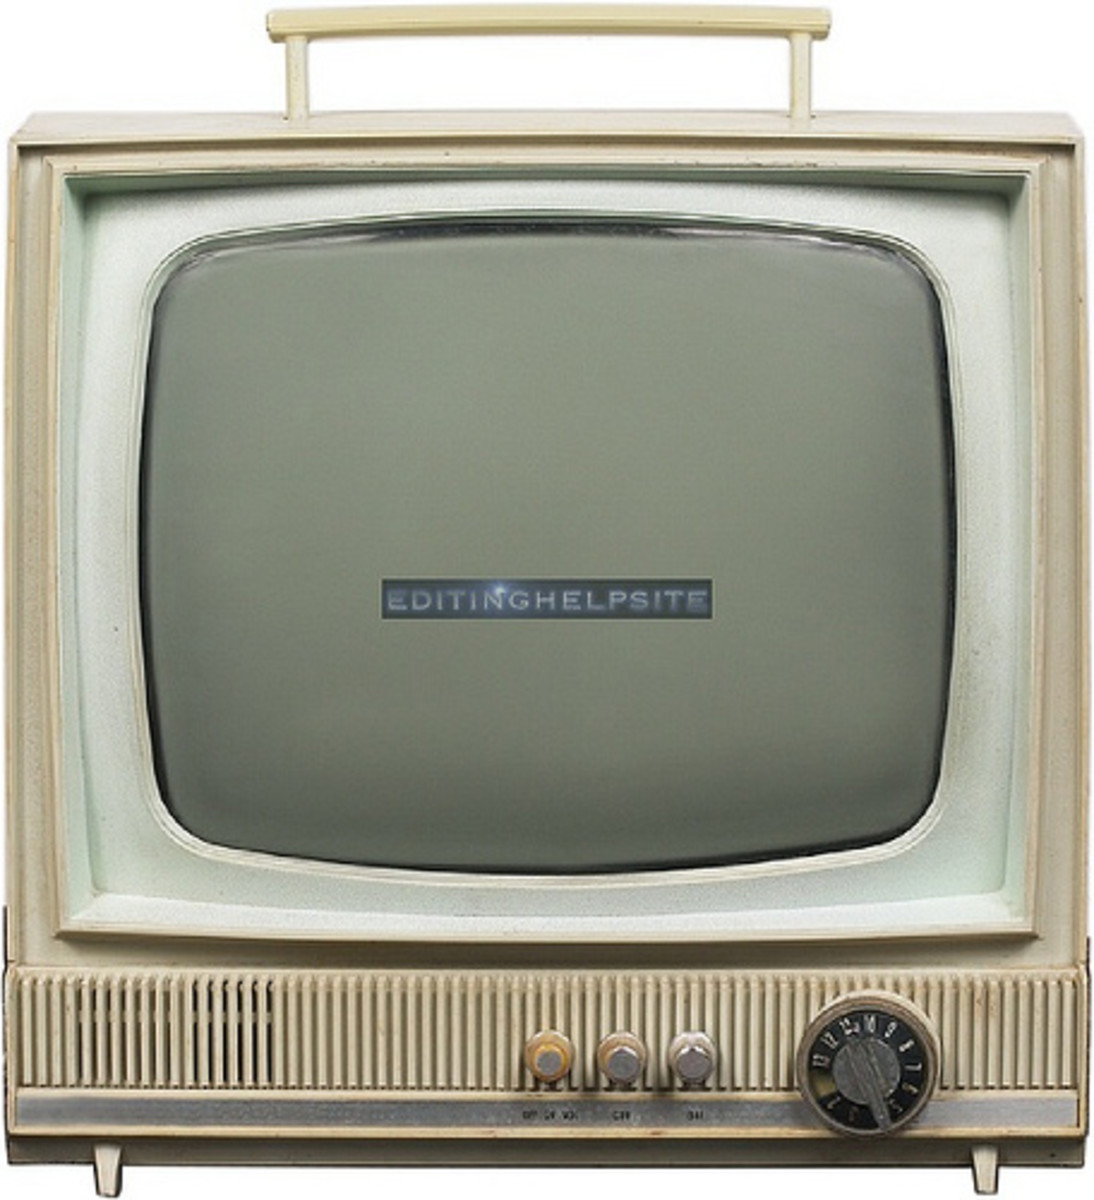 10 Things to do with Your Old Television